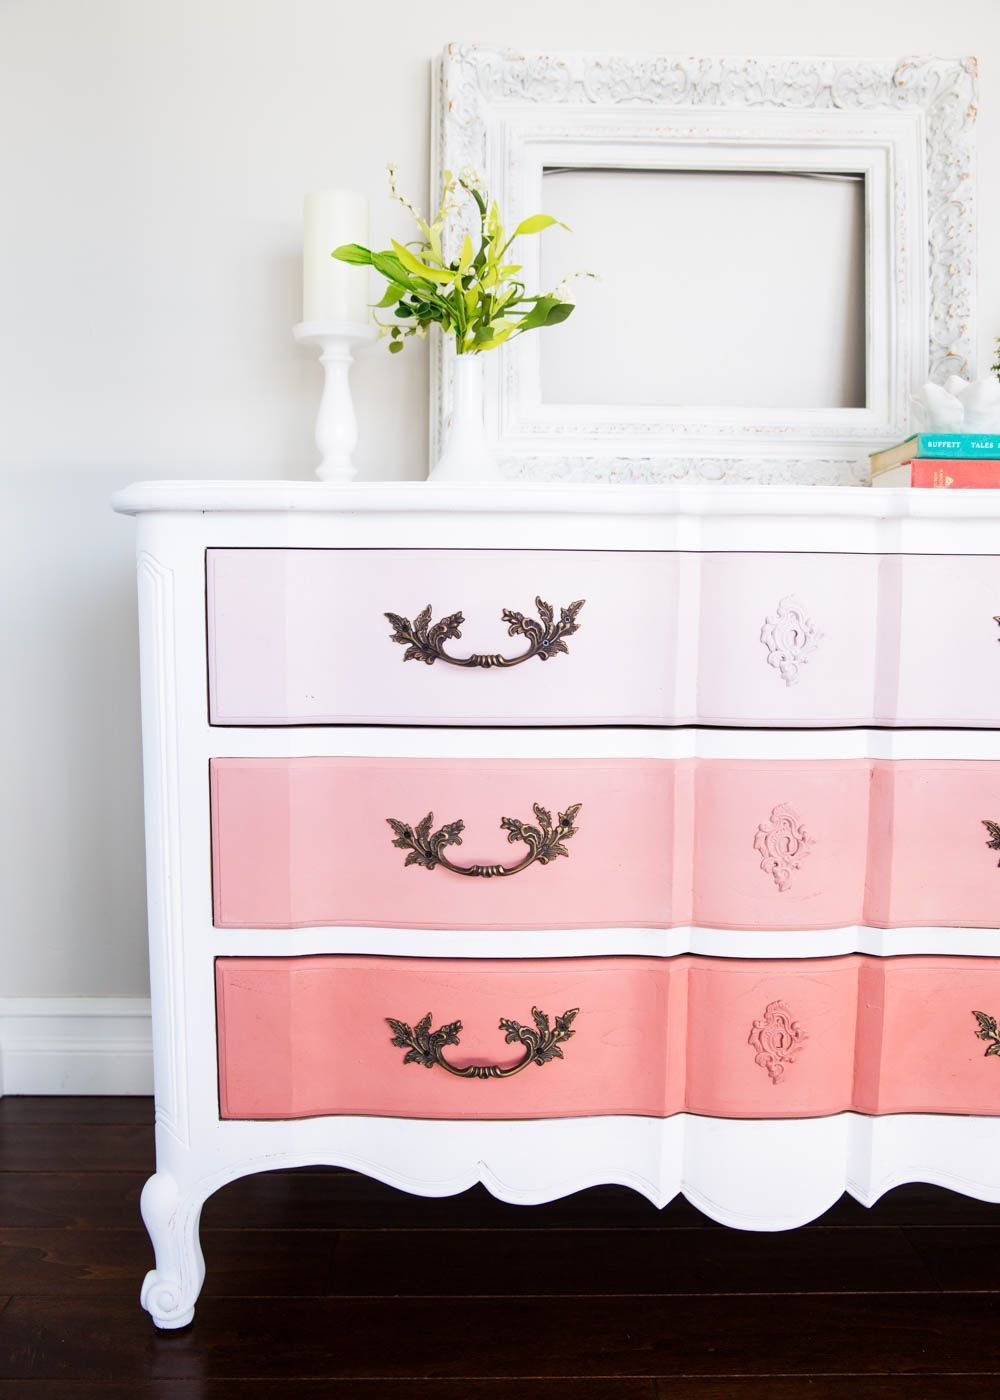 to Paint Furniture and Ombre Dresser The easiest tutorial on how to paint furniture ...creating a DIY ombre dresser. Just 4 easy steps to creating this look.The easiest tutorial on how to paint furniture ...creating a DIY ombre dresser. Just 4 easy steps to creating this look.